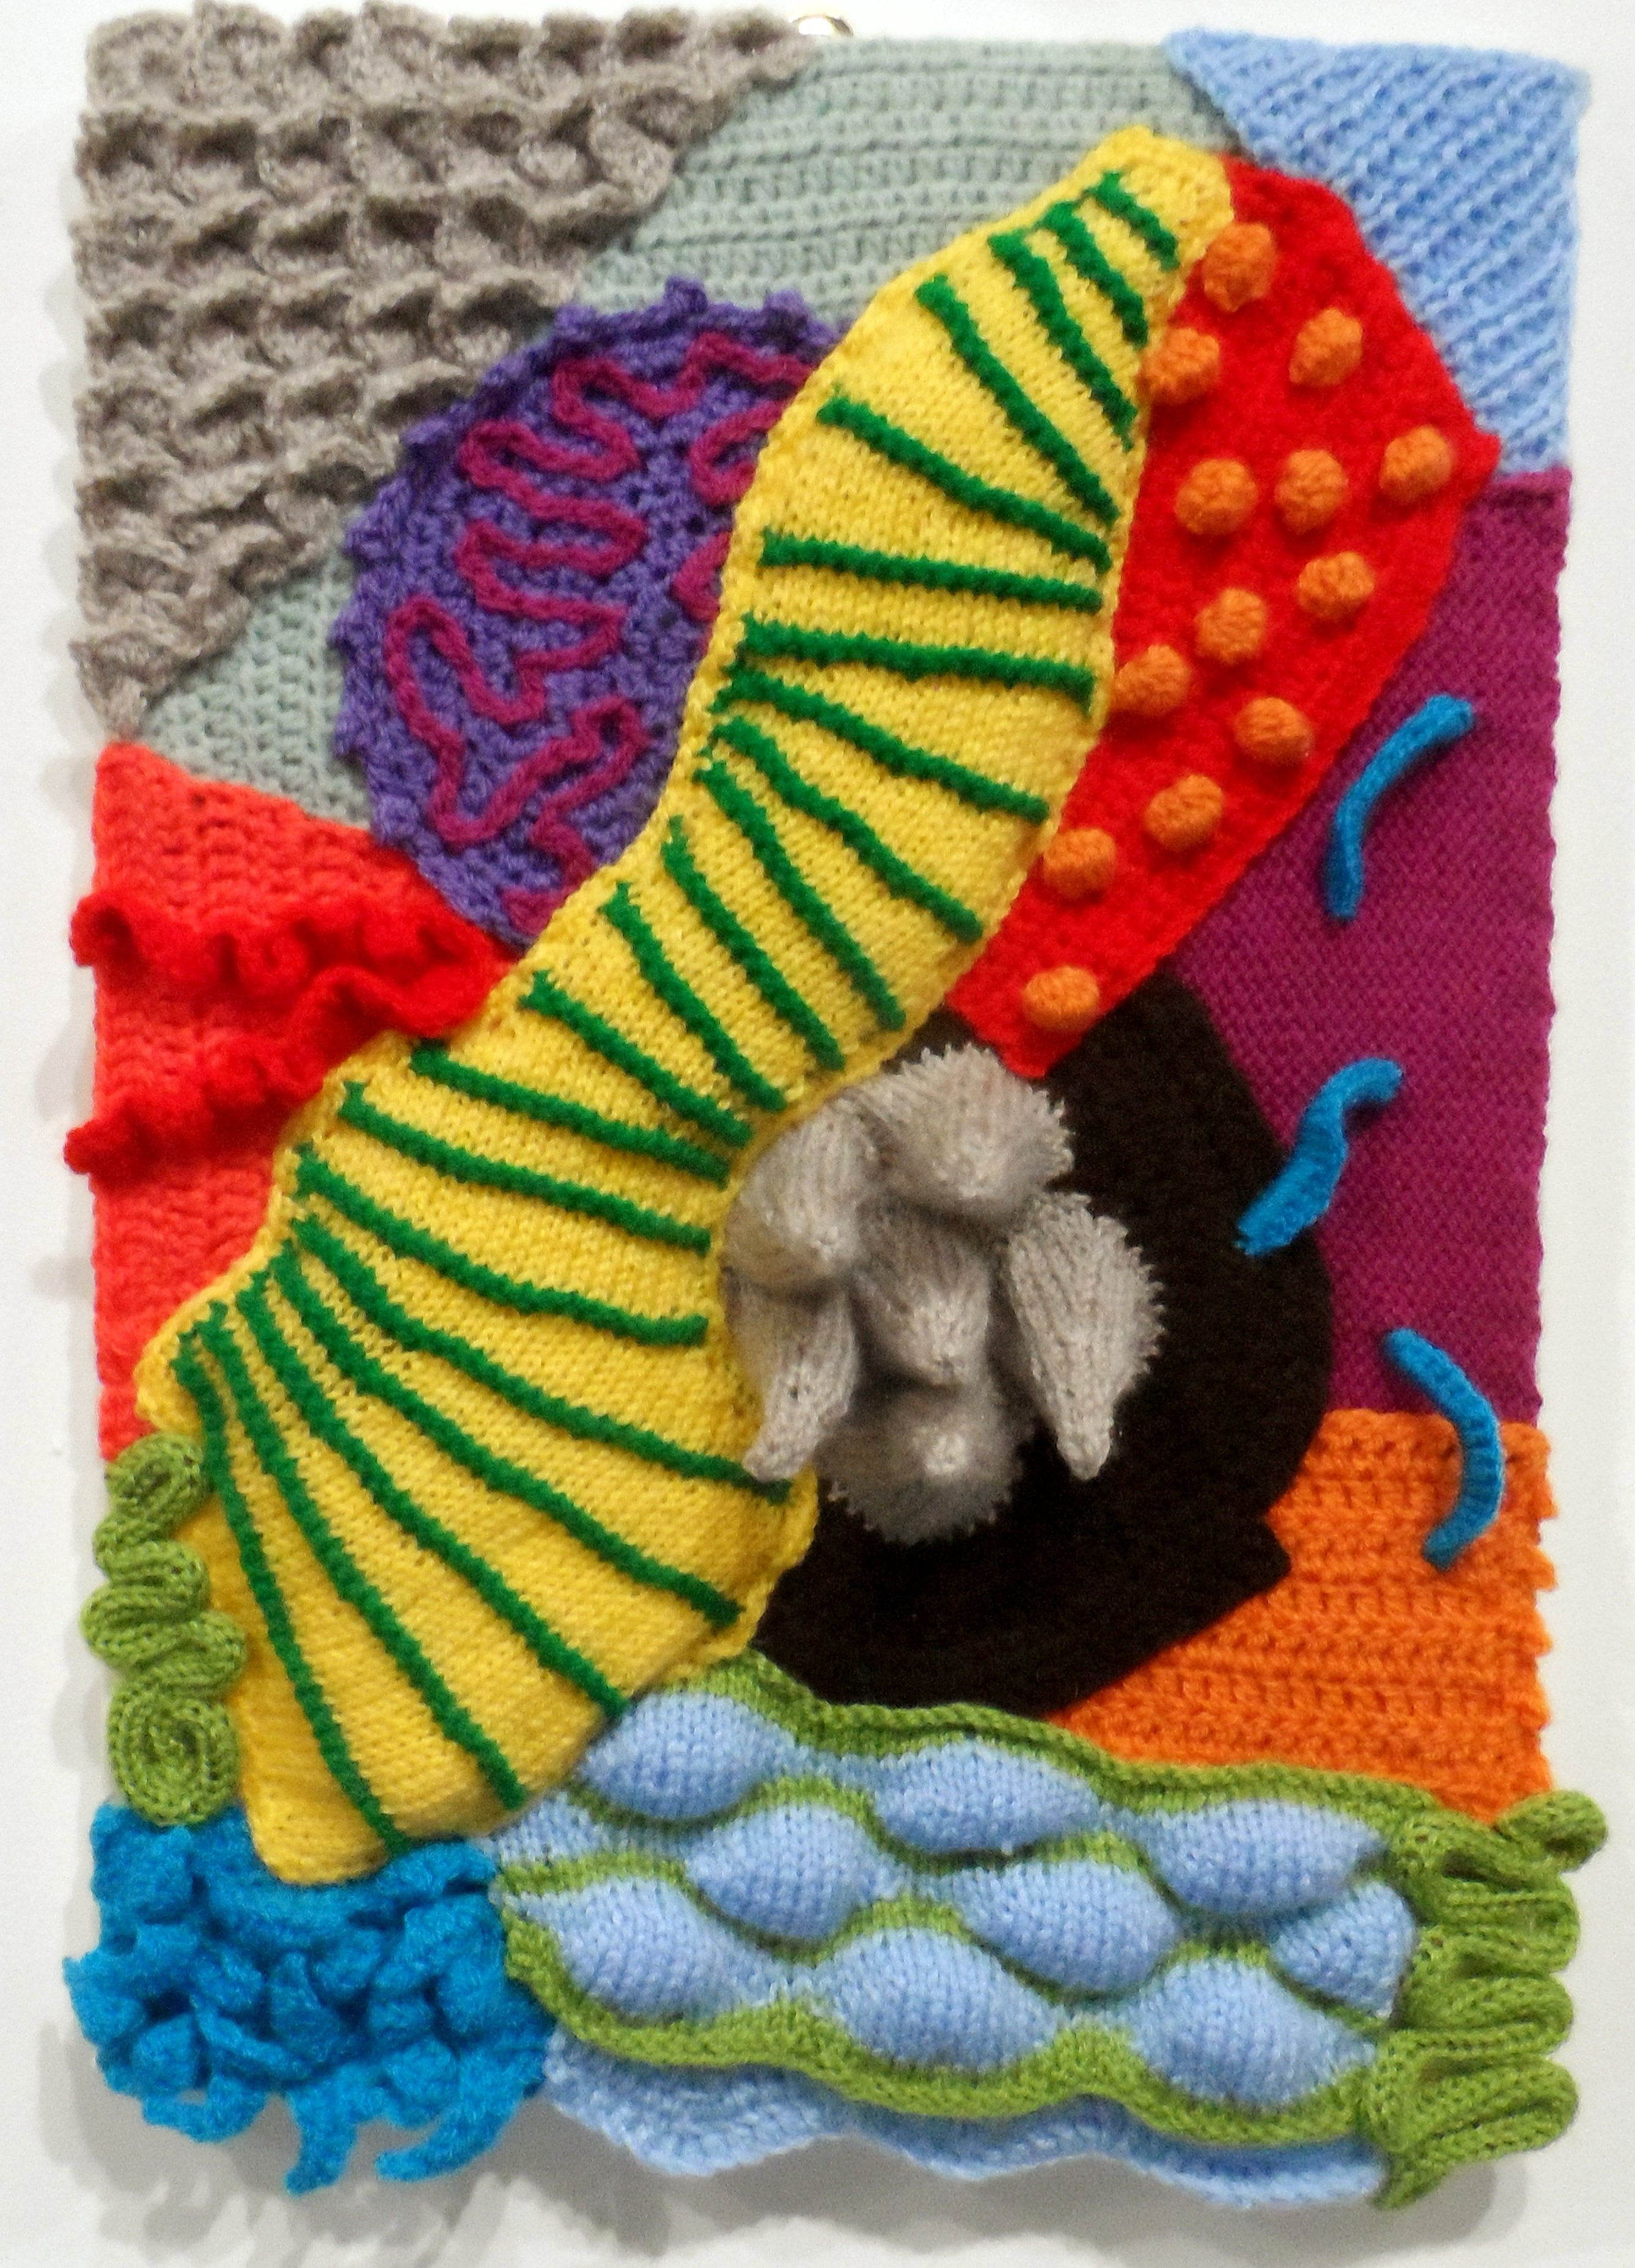 ABSTRACT LANDSCAPE by Ildiko Szabo, freeform knitting, Re-View Textile Group, Frodsham 2019